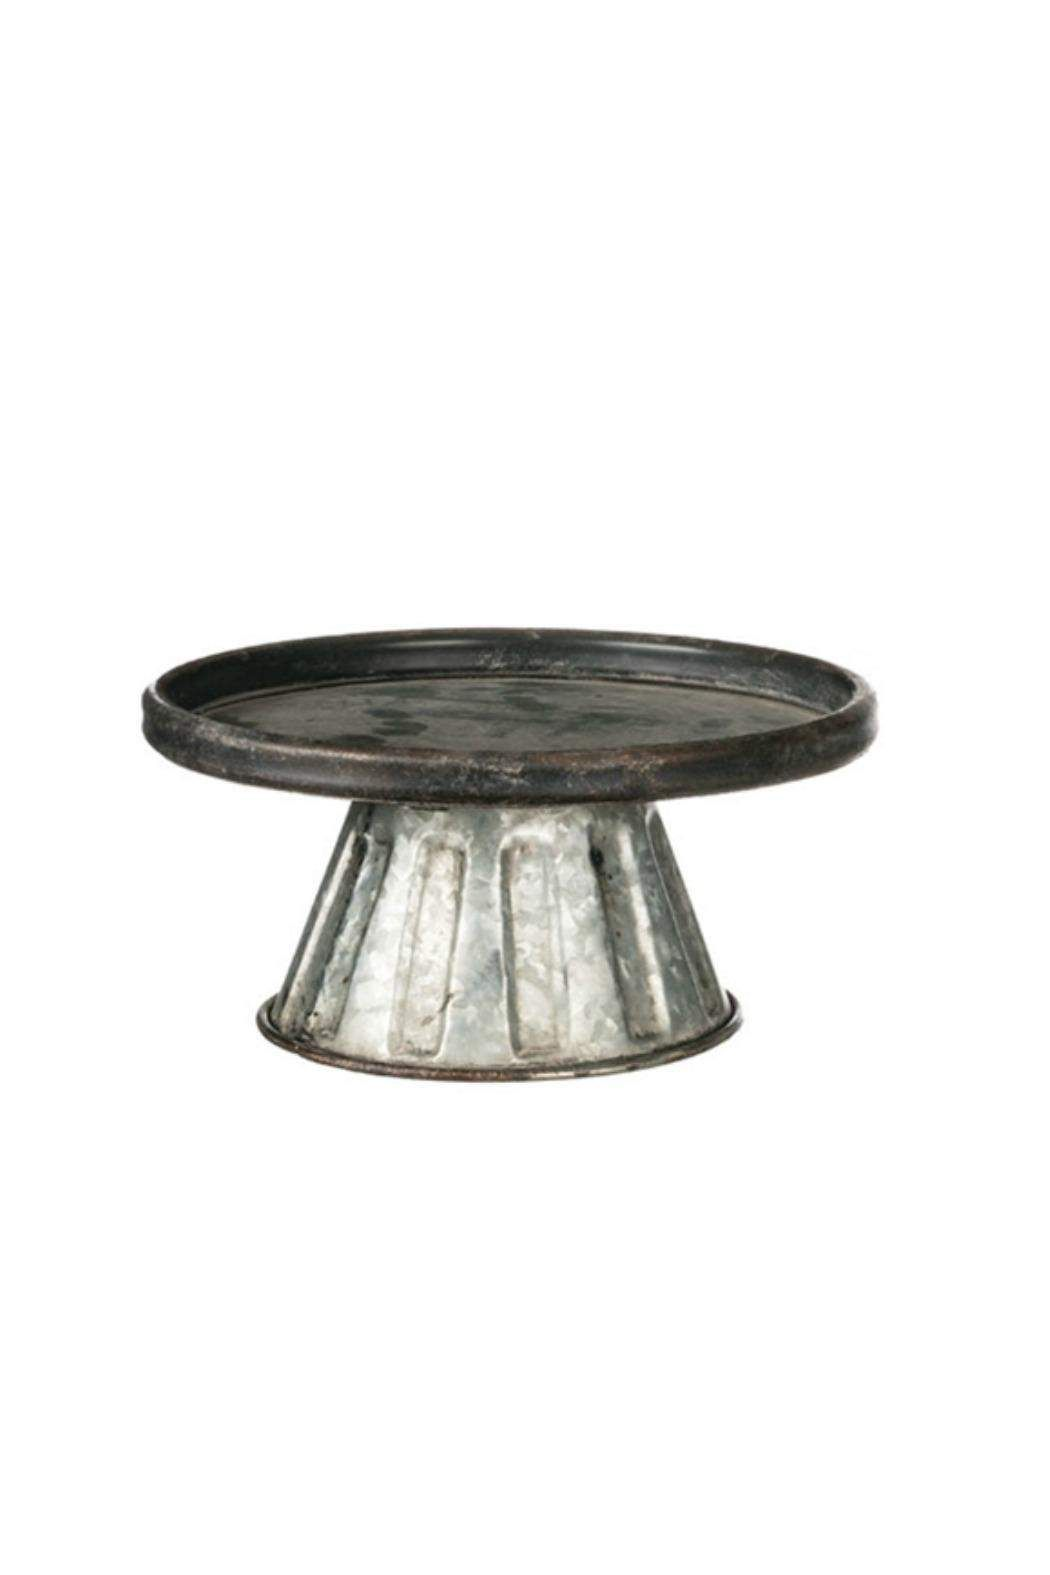 """Decorative Galvanized Metal Pedestal. Great for displaying baked goods. Makes a great gift.    Measures: 9.5"""" x 11""""   Small Galvanized Pedestal by Walker's. Home & Gifts - Home Decor - Decorative Objects Alabama"""